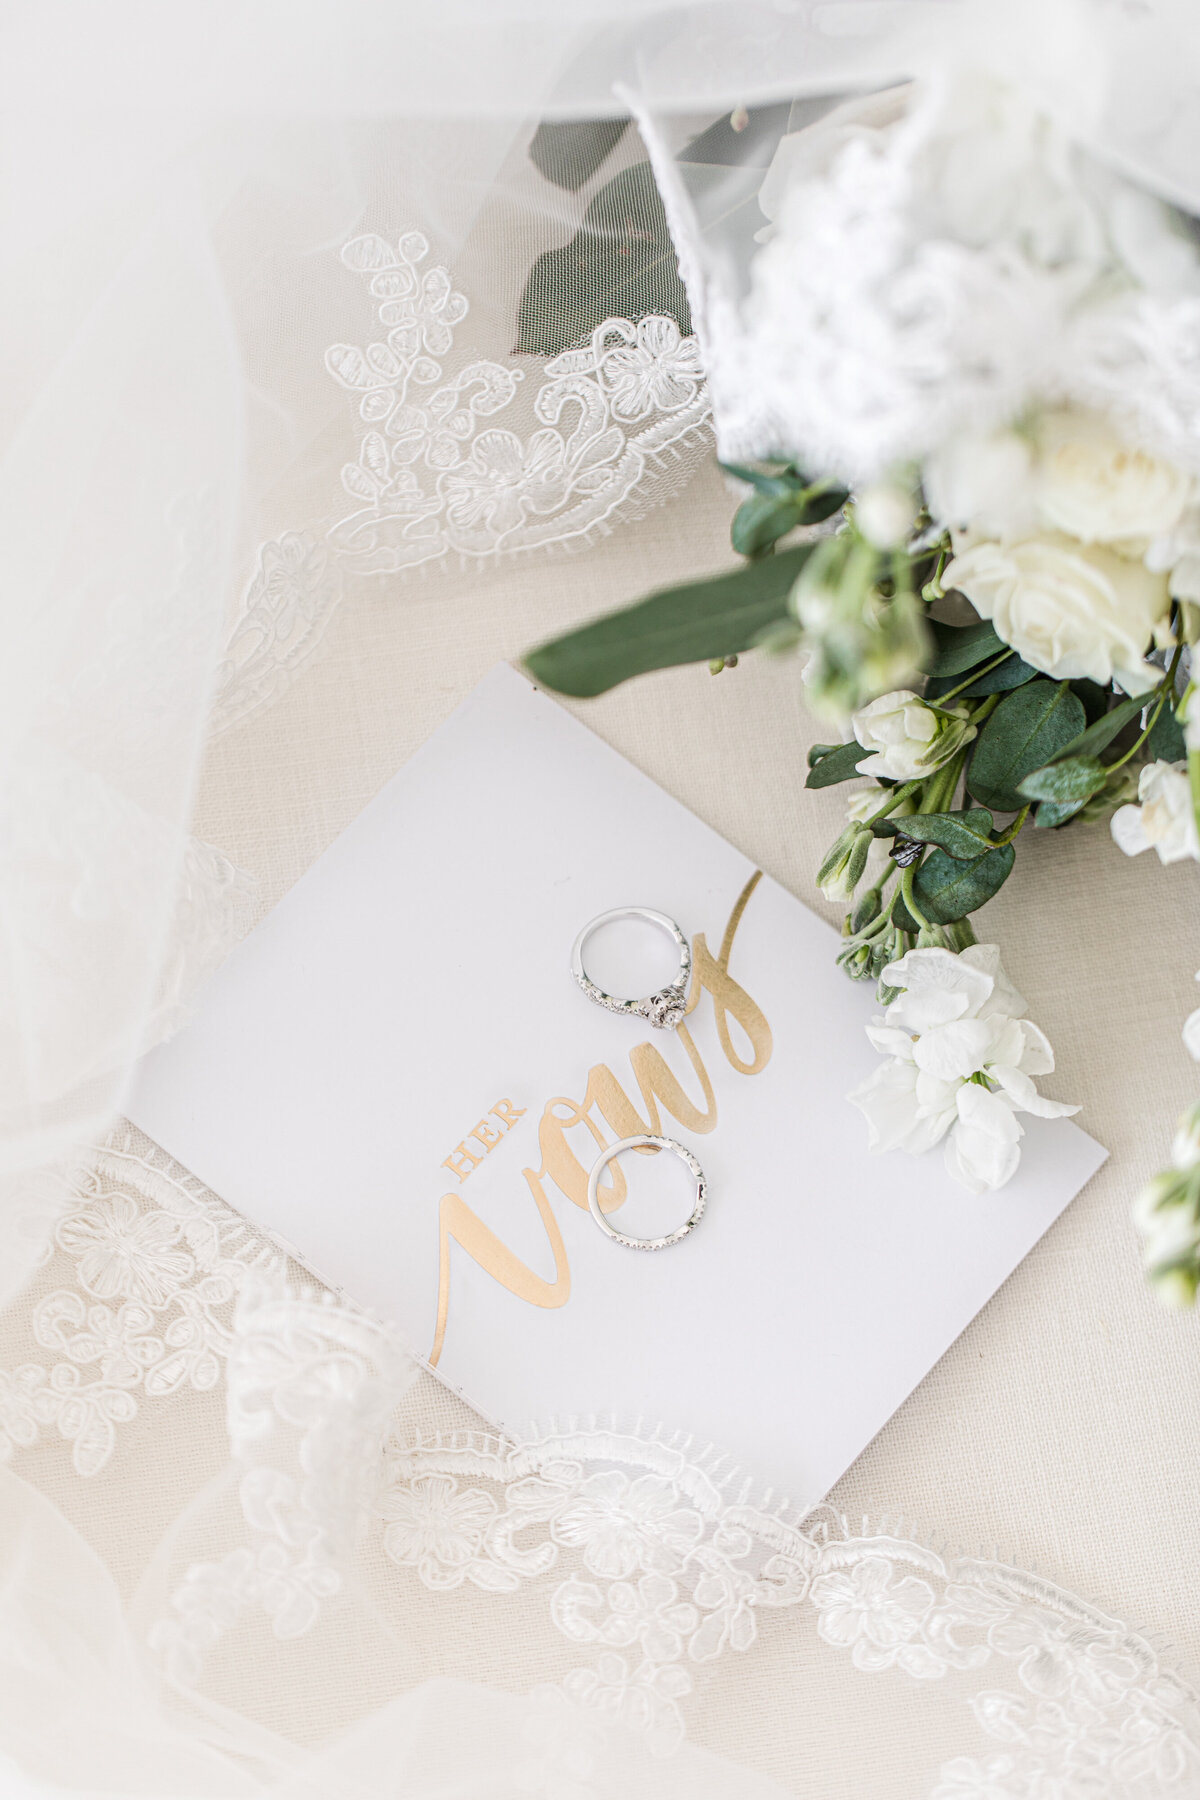 Ashley & Trevor Wedding 2019 _ Laura_s Favorites _ 28